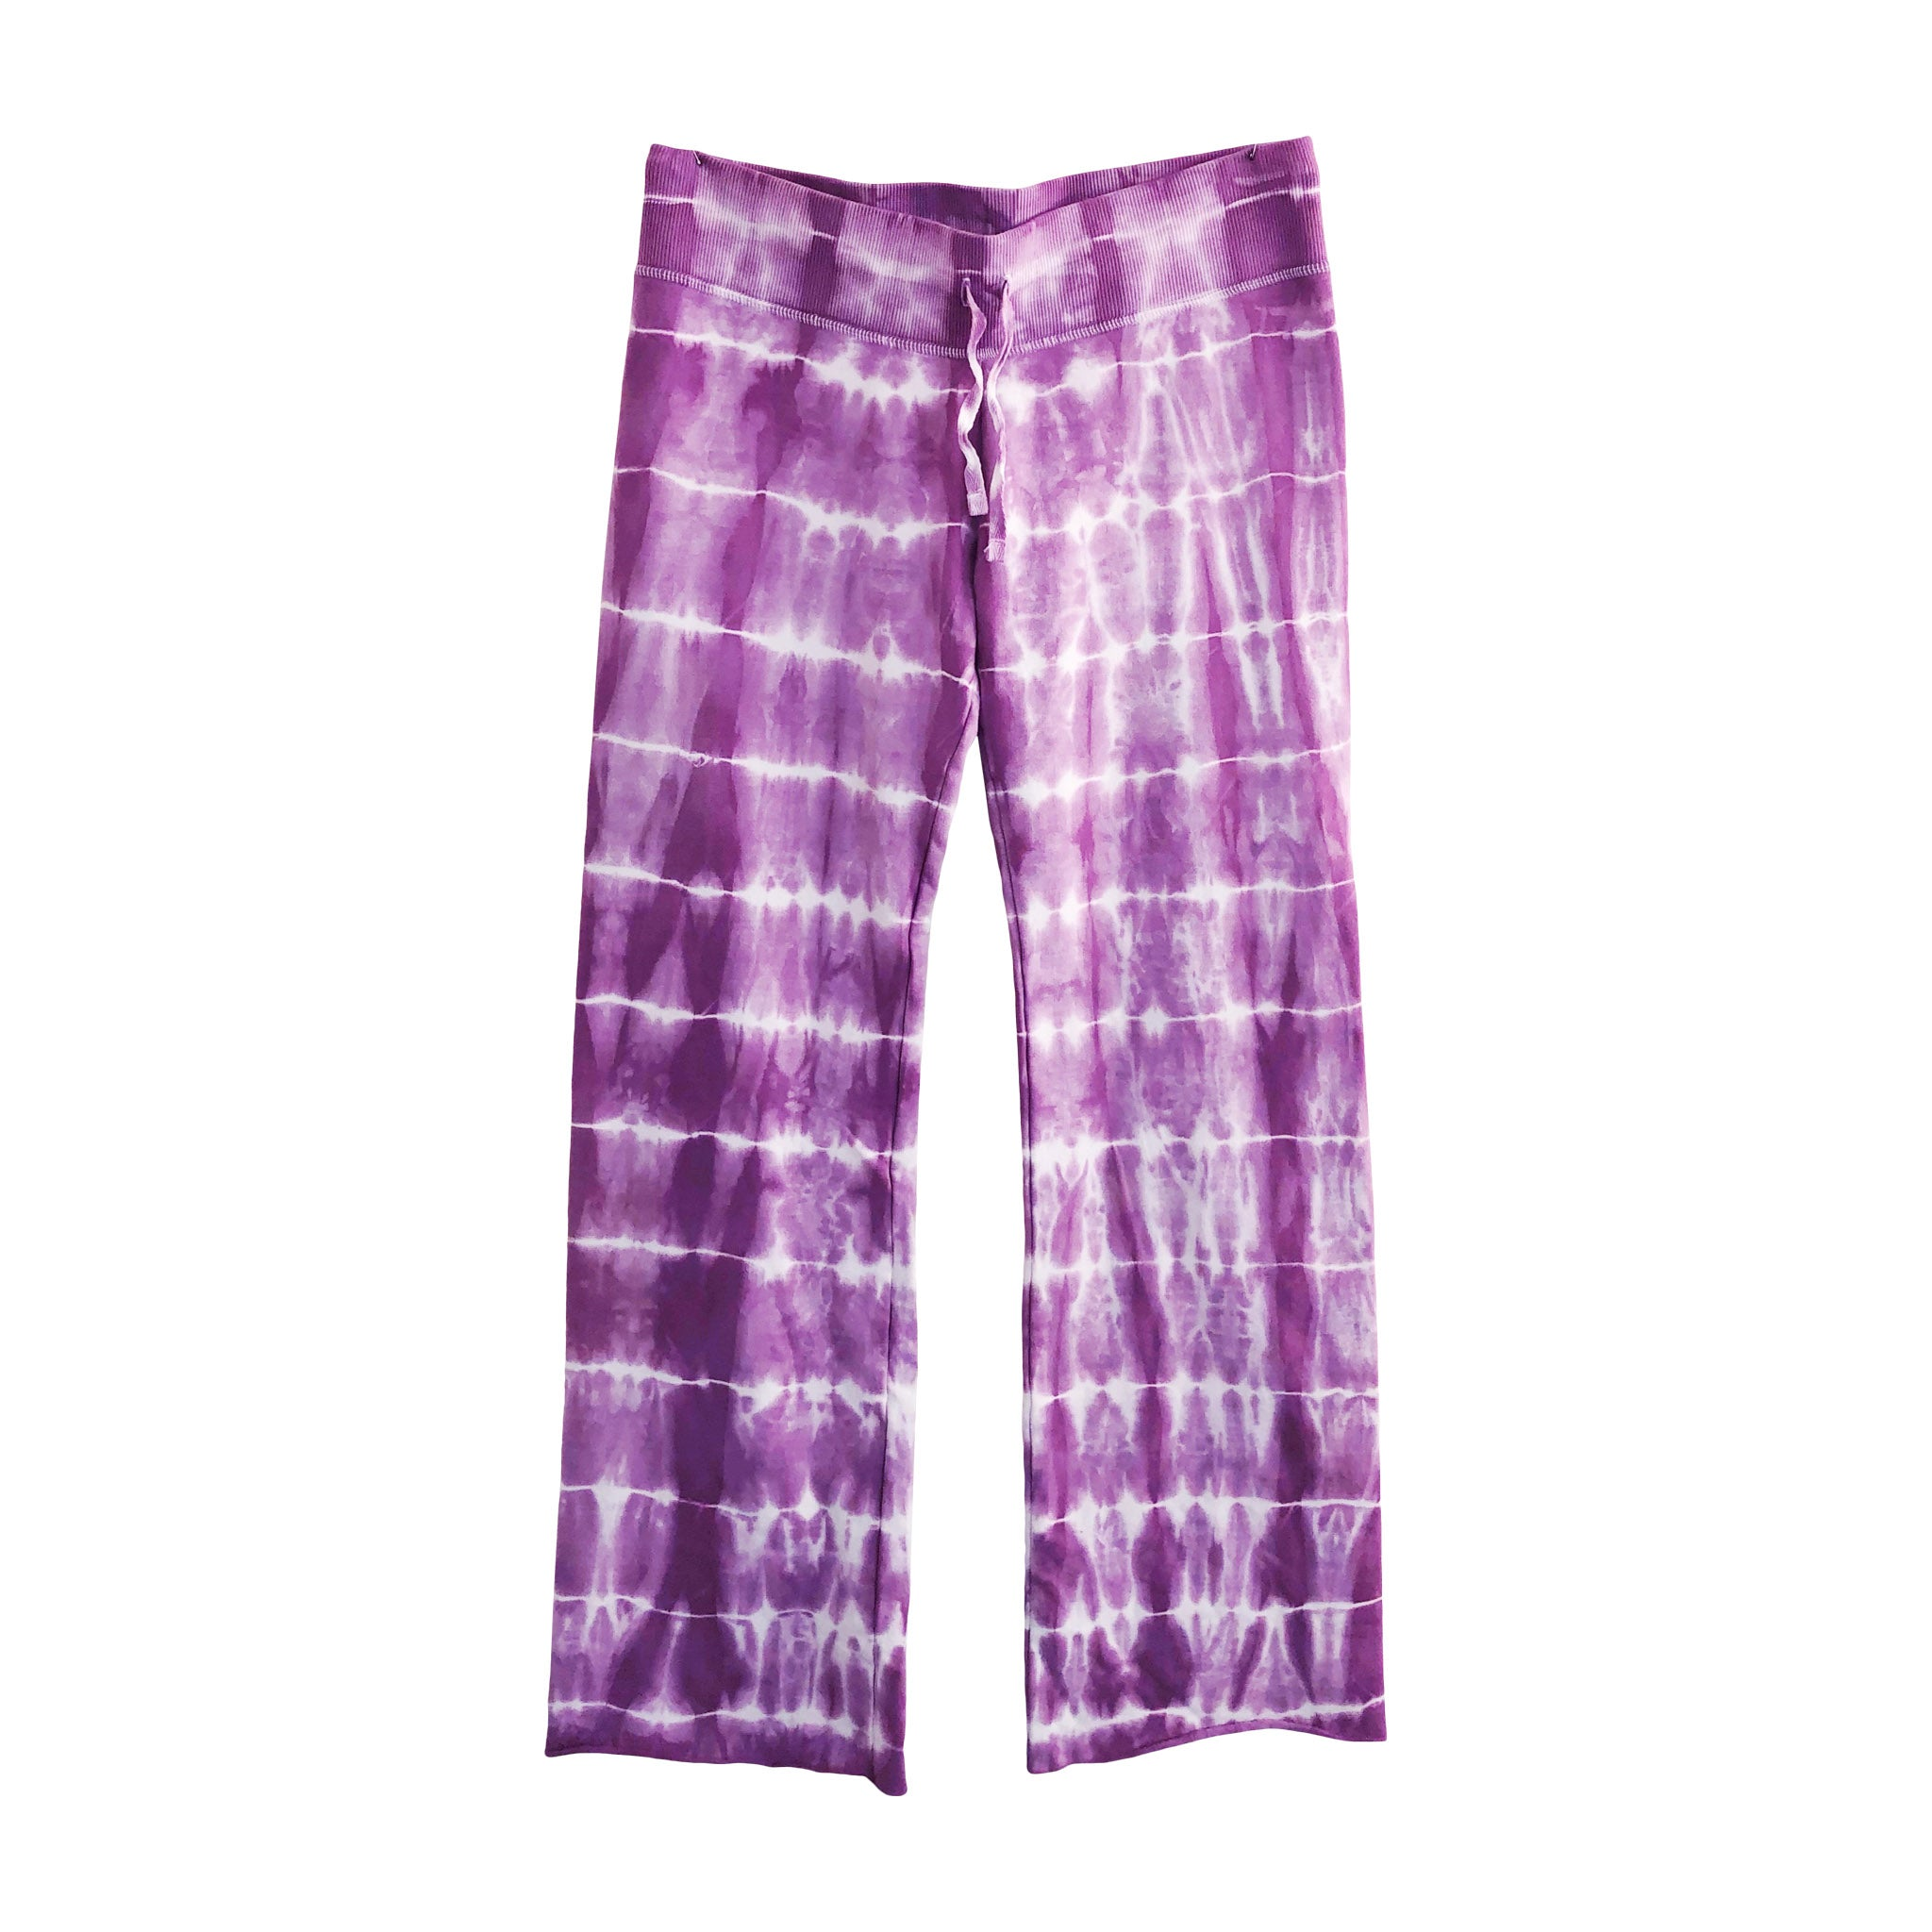 Women's Blue Tie Dye Sweat Pant